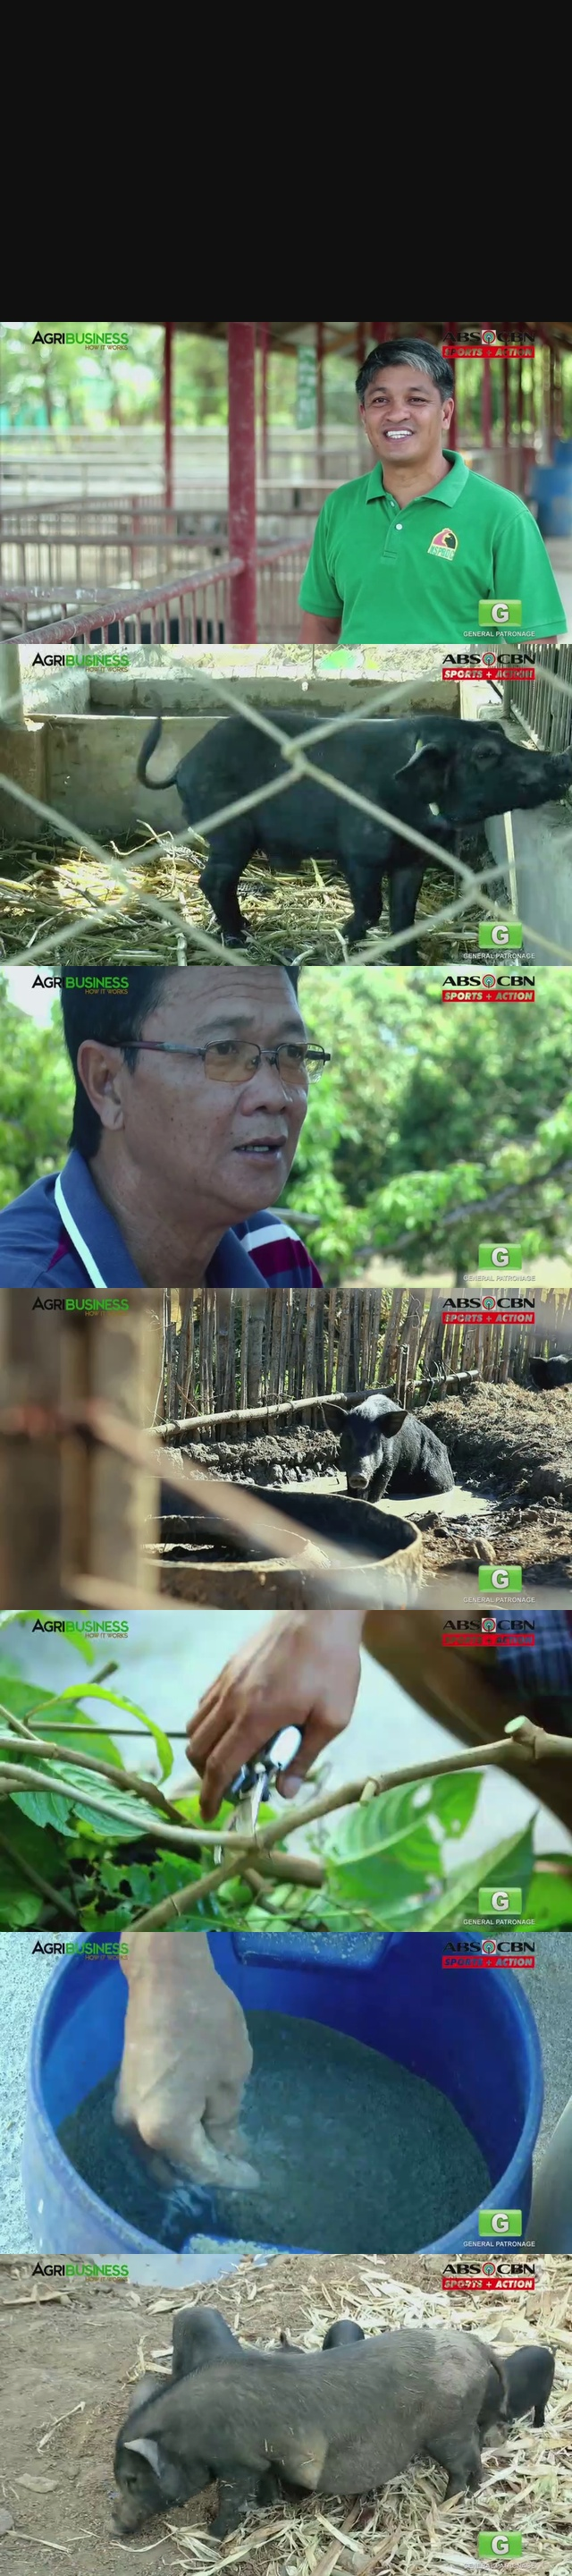 Native Pig Farming Part 2 : Native Pig Farming Prices | Agribusiness Philippines